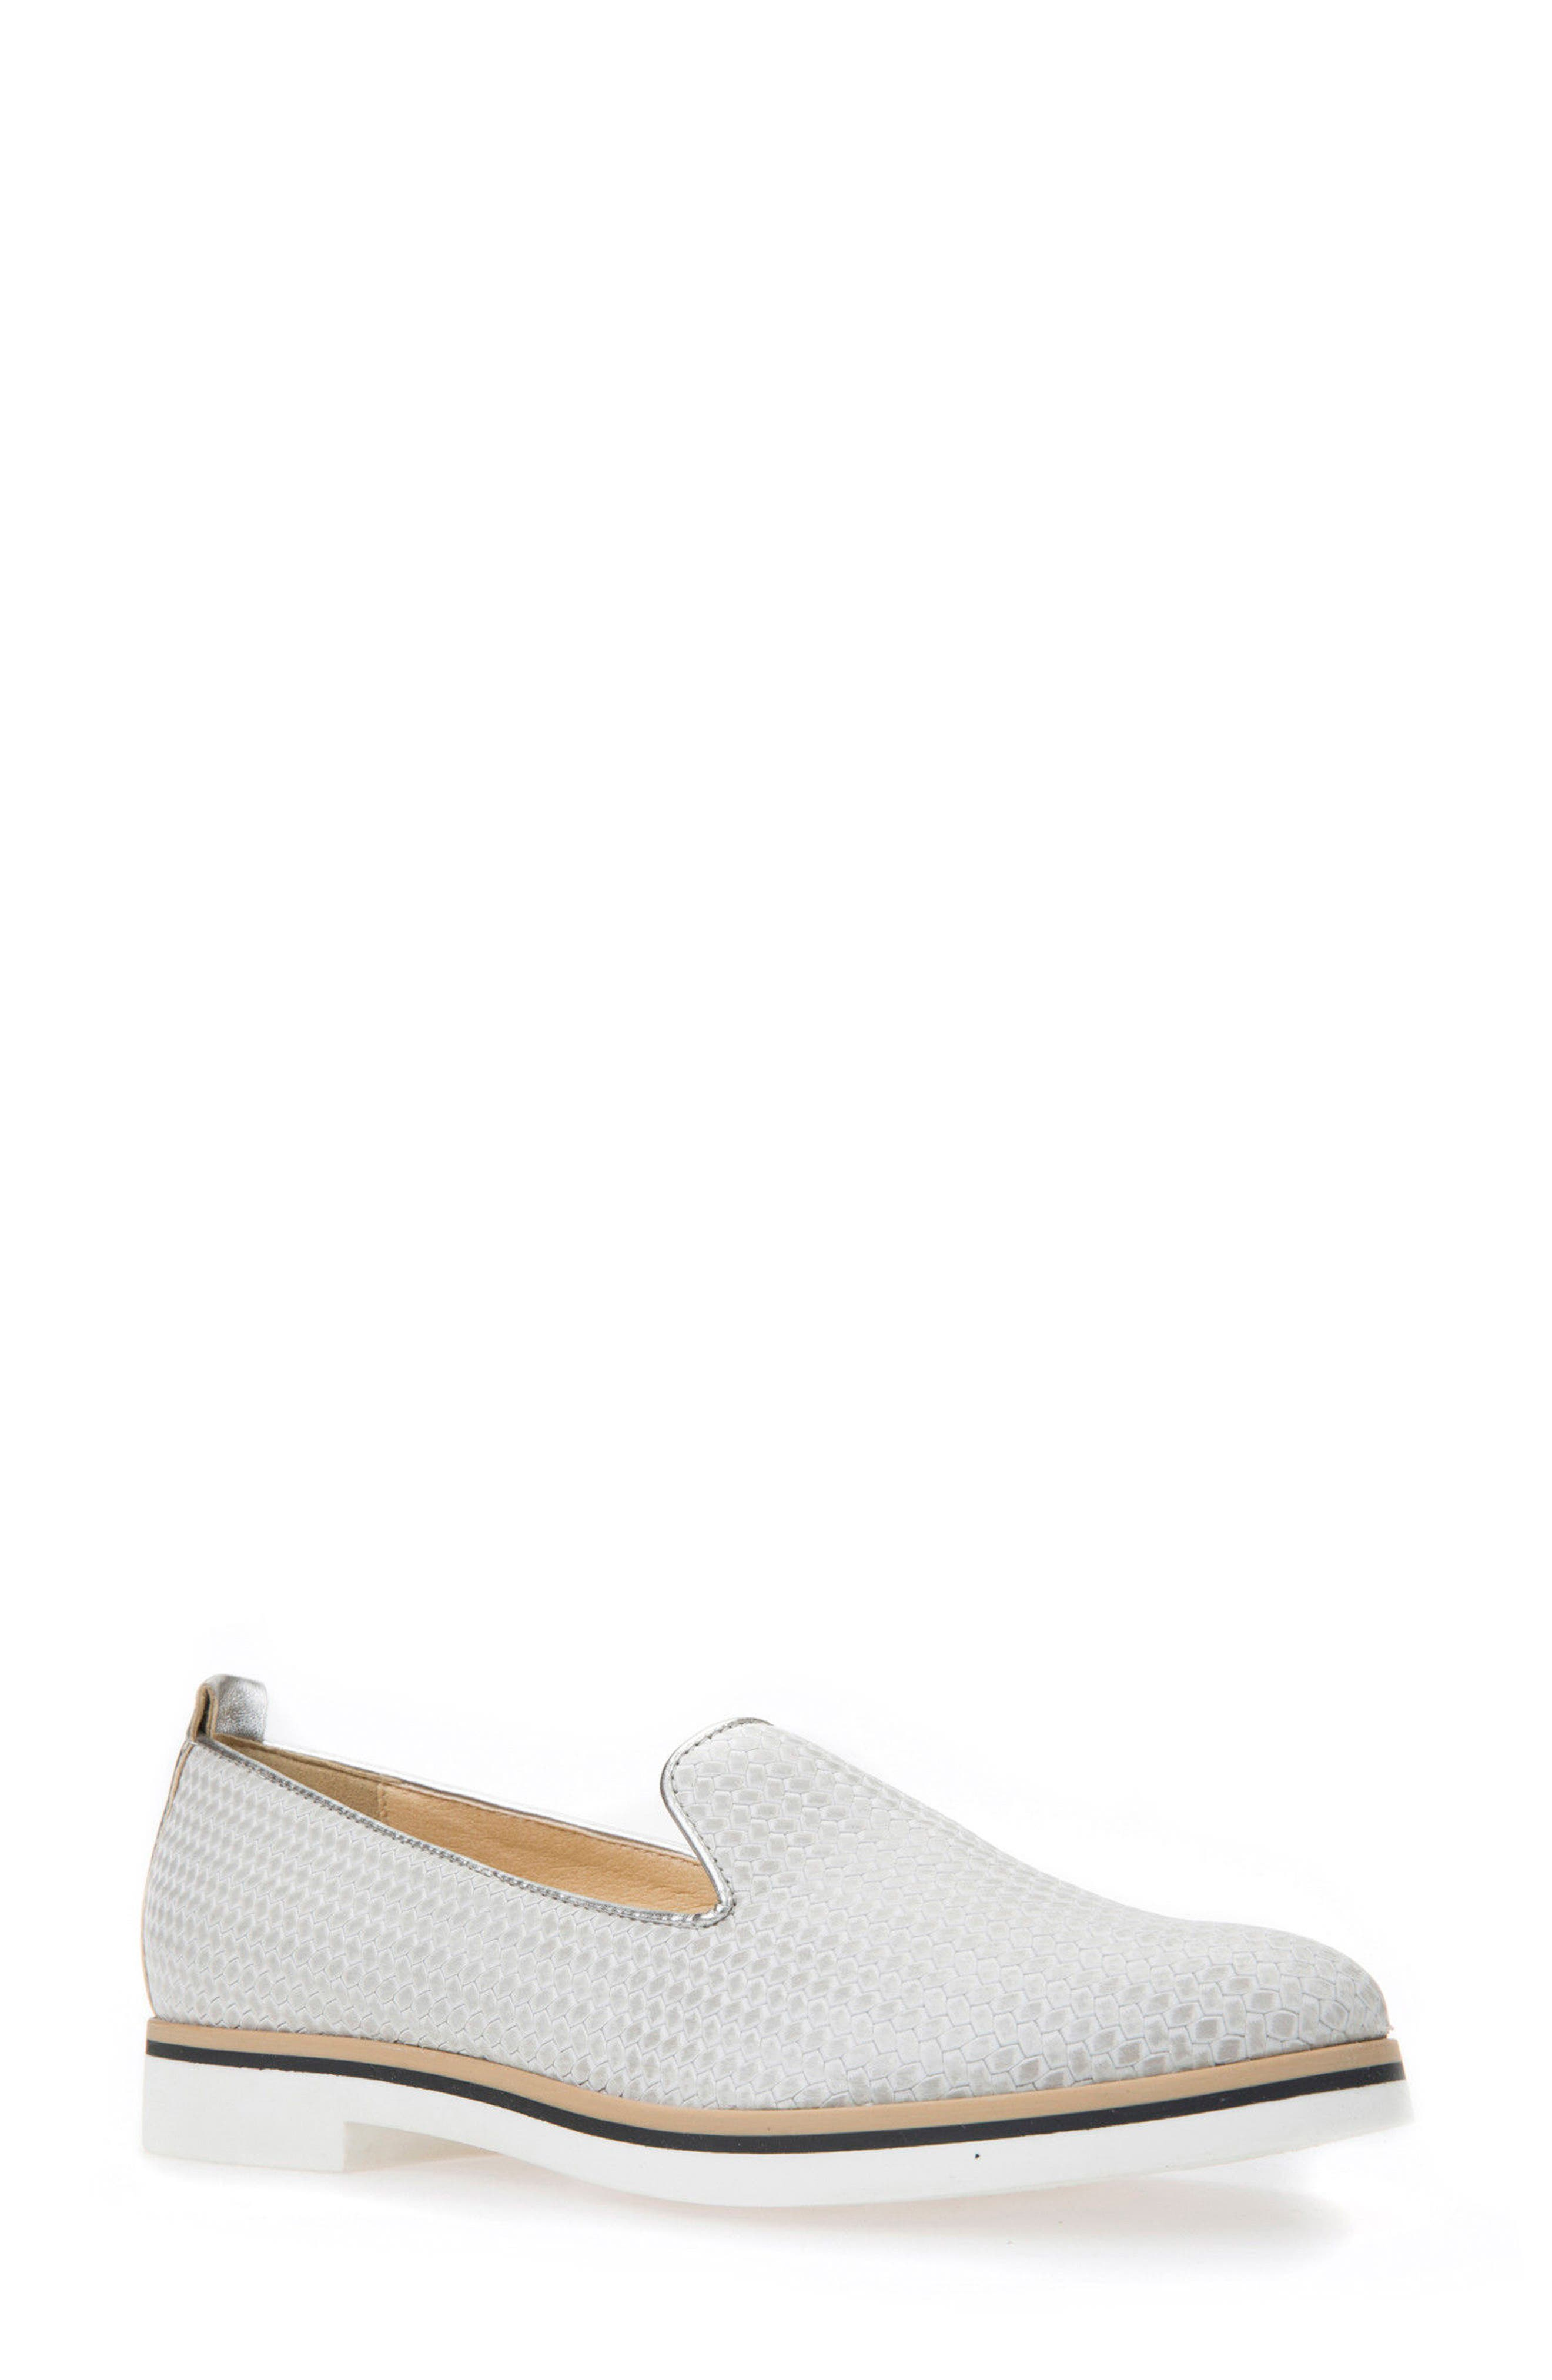 Janalee Woven Loafer,                         Main,                         color, Light Grey Leather